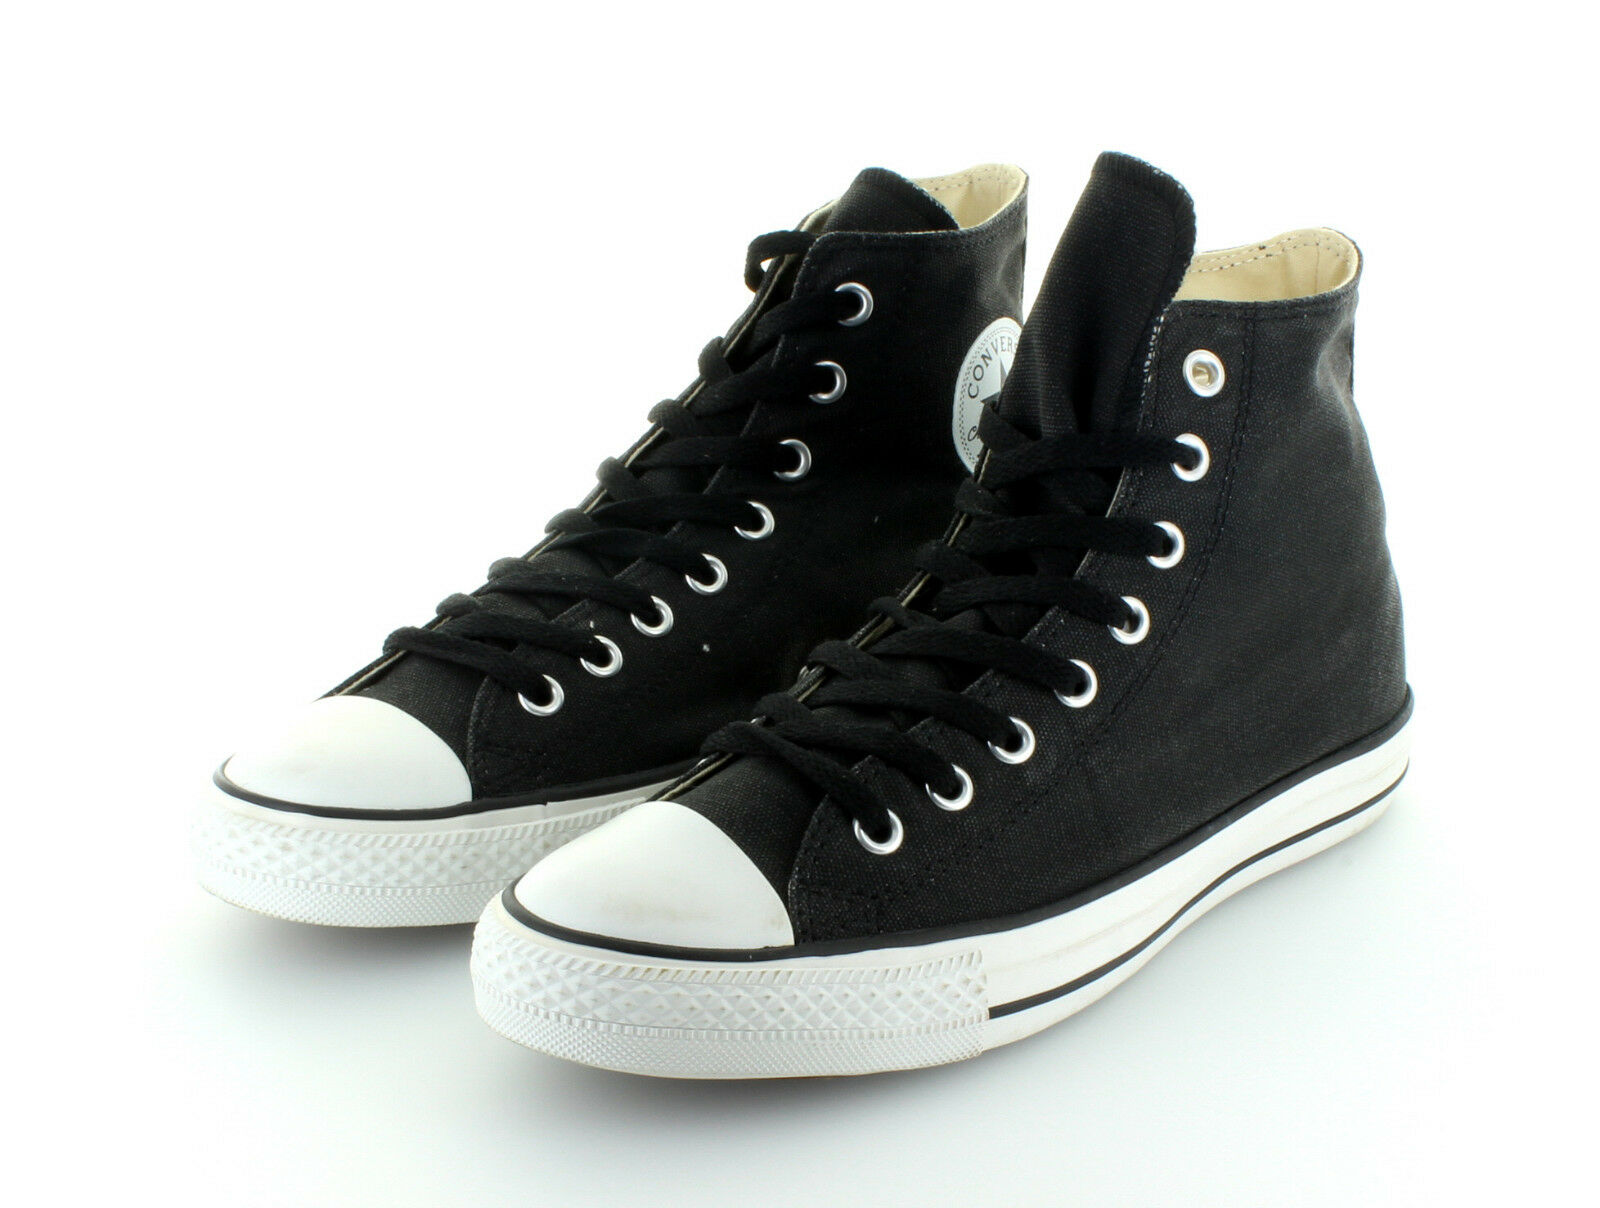 Converse Chuck / Taylor AS Hi Coated Wash Negro 42,5 / Chuck 43,5 US 9 4cf9d3